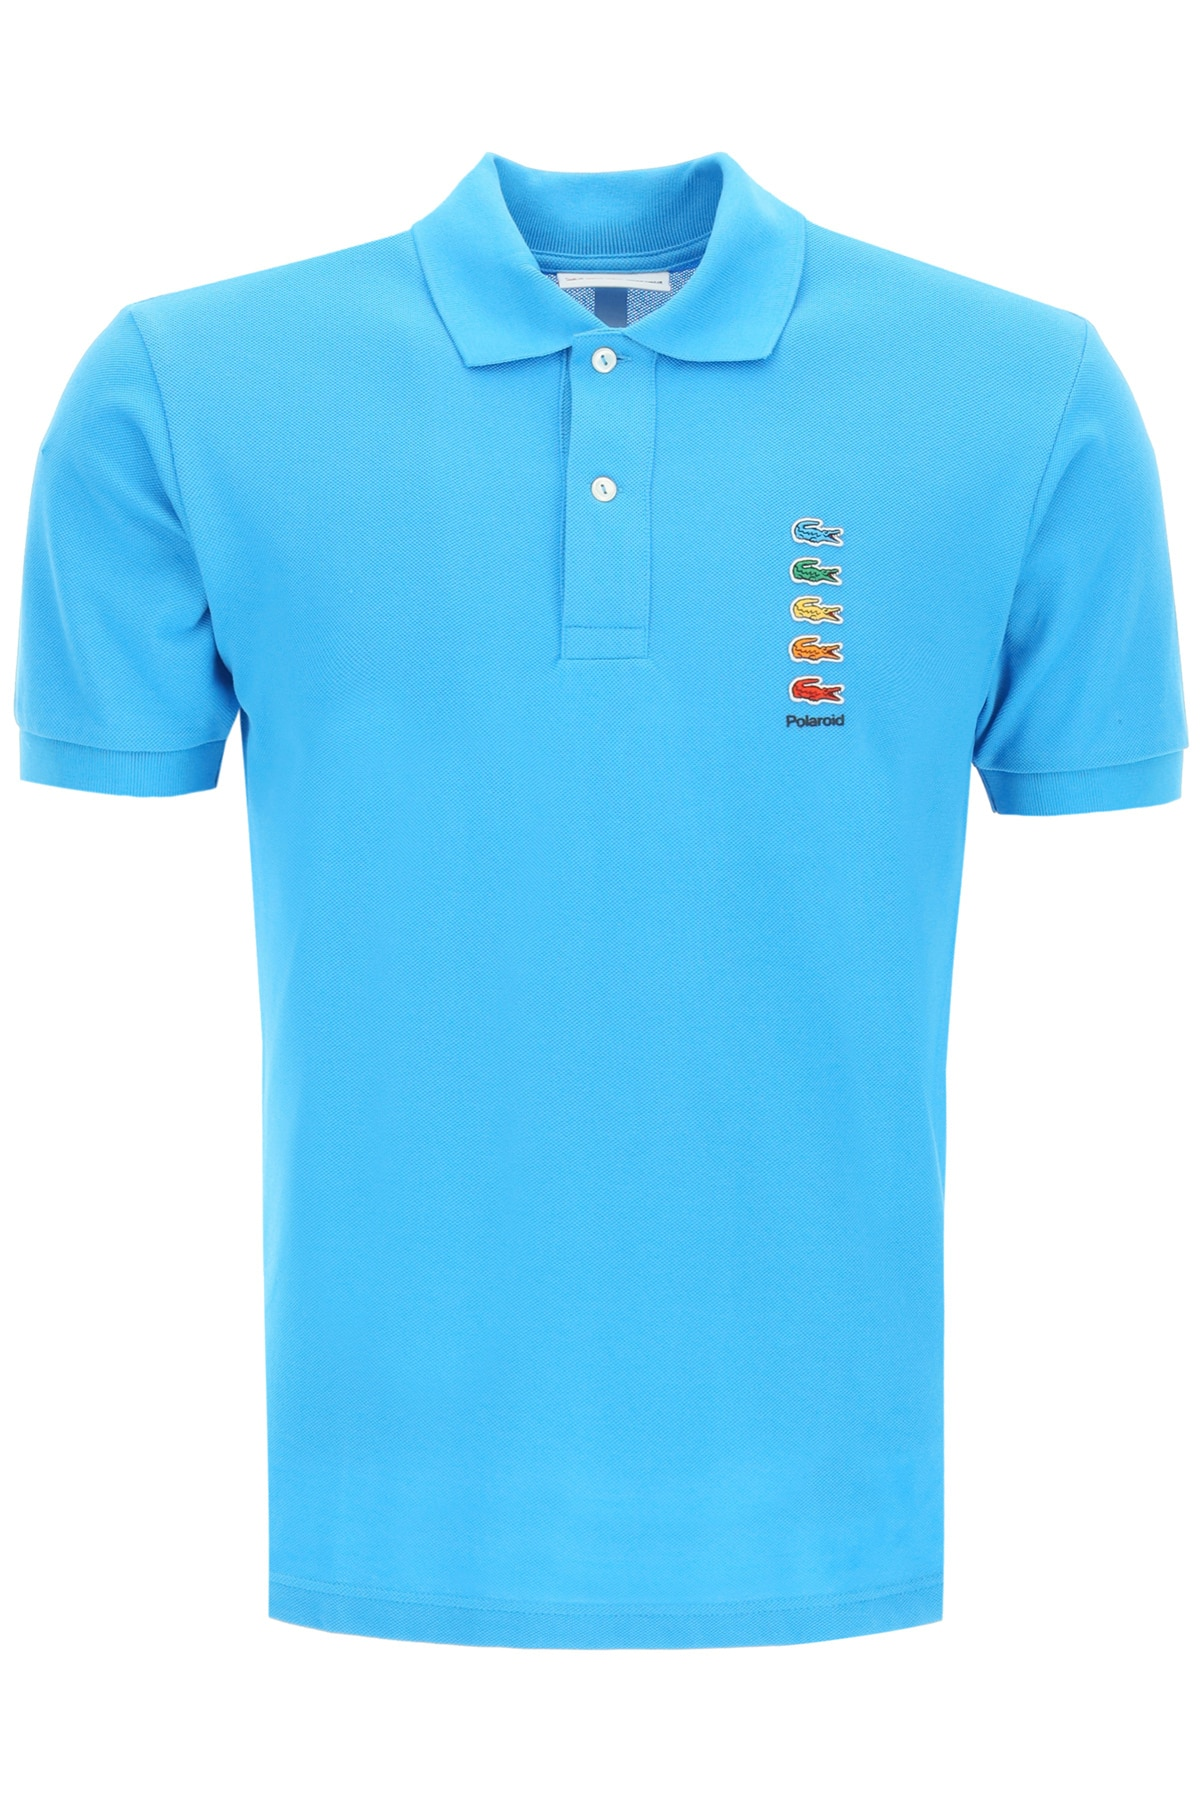 LACOSTE X POLAROID POLO SHIRT WITH COLORFUL CROCODILES 6 Blue, Light blue Cotton